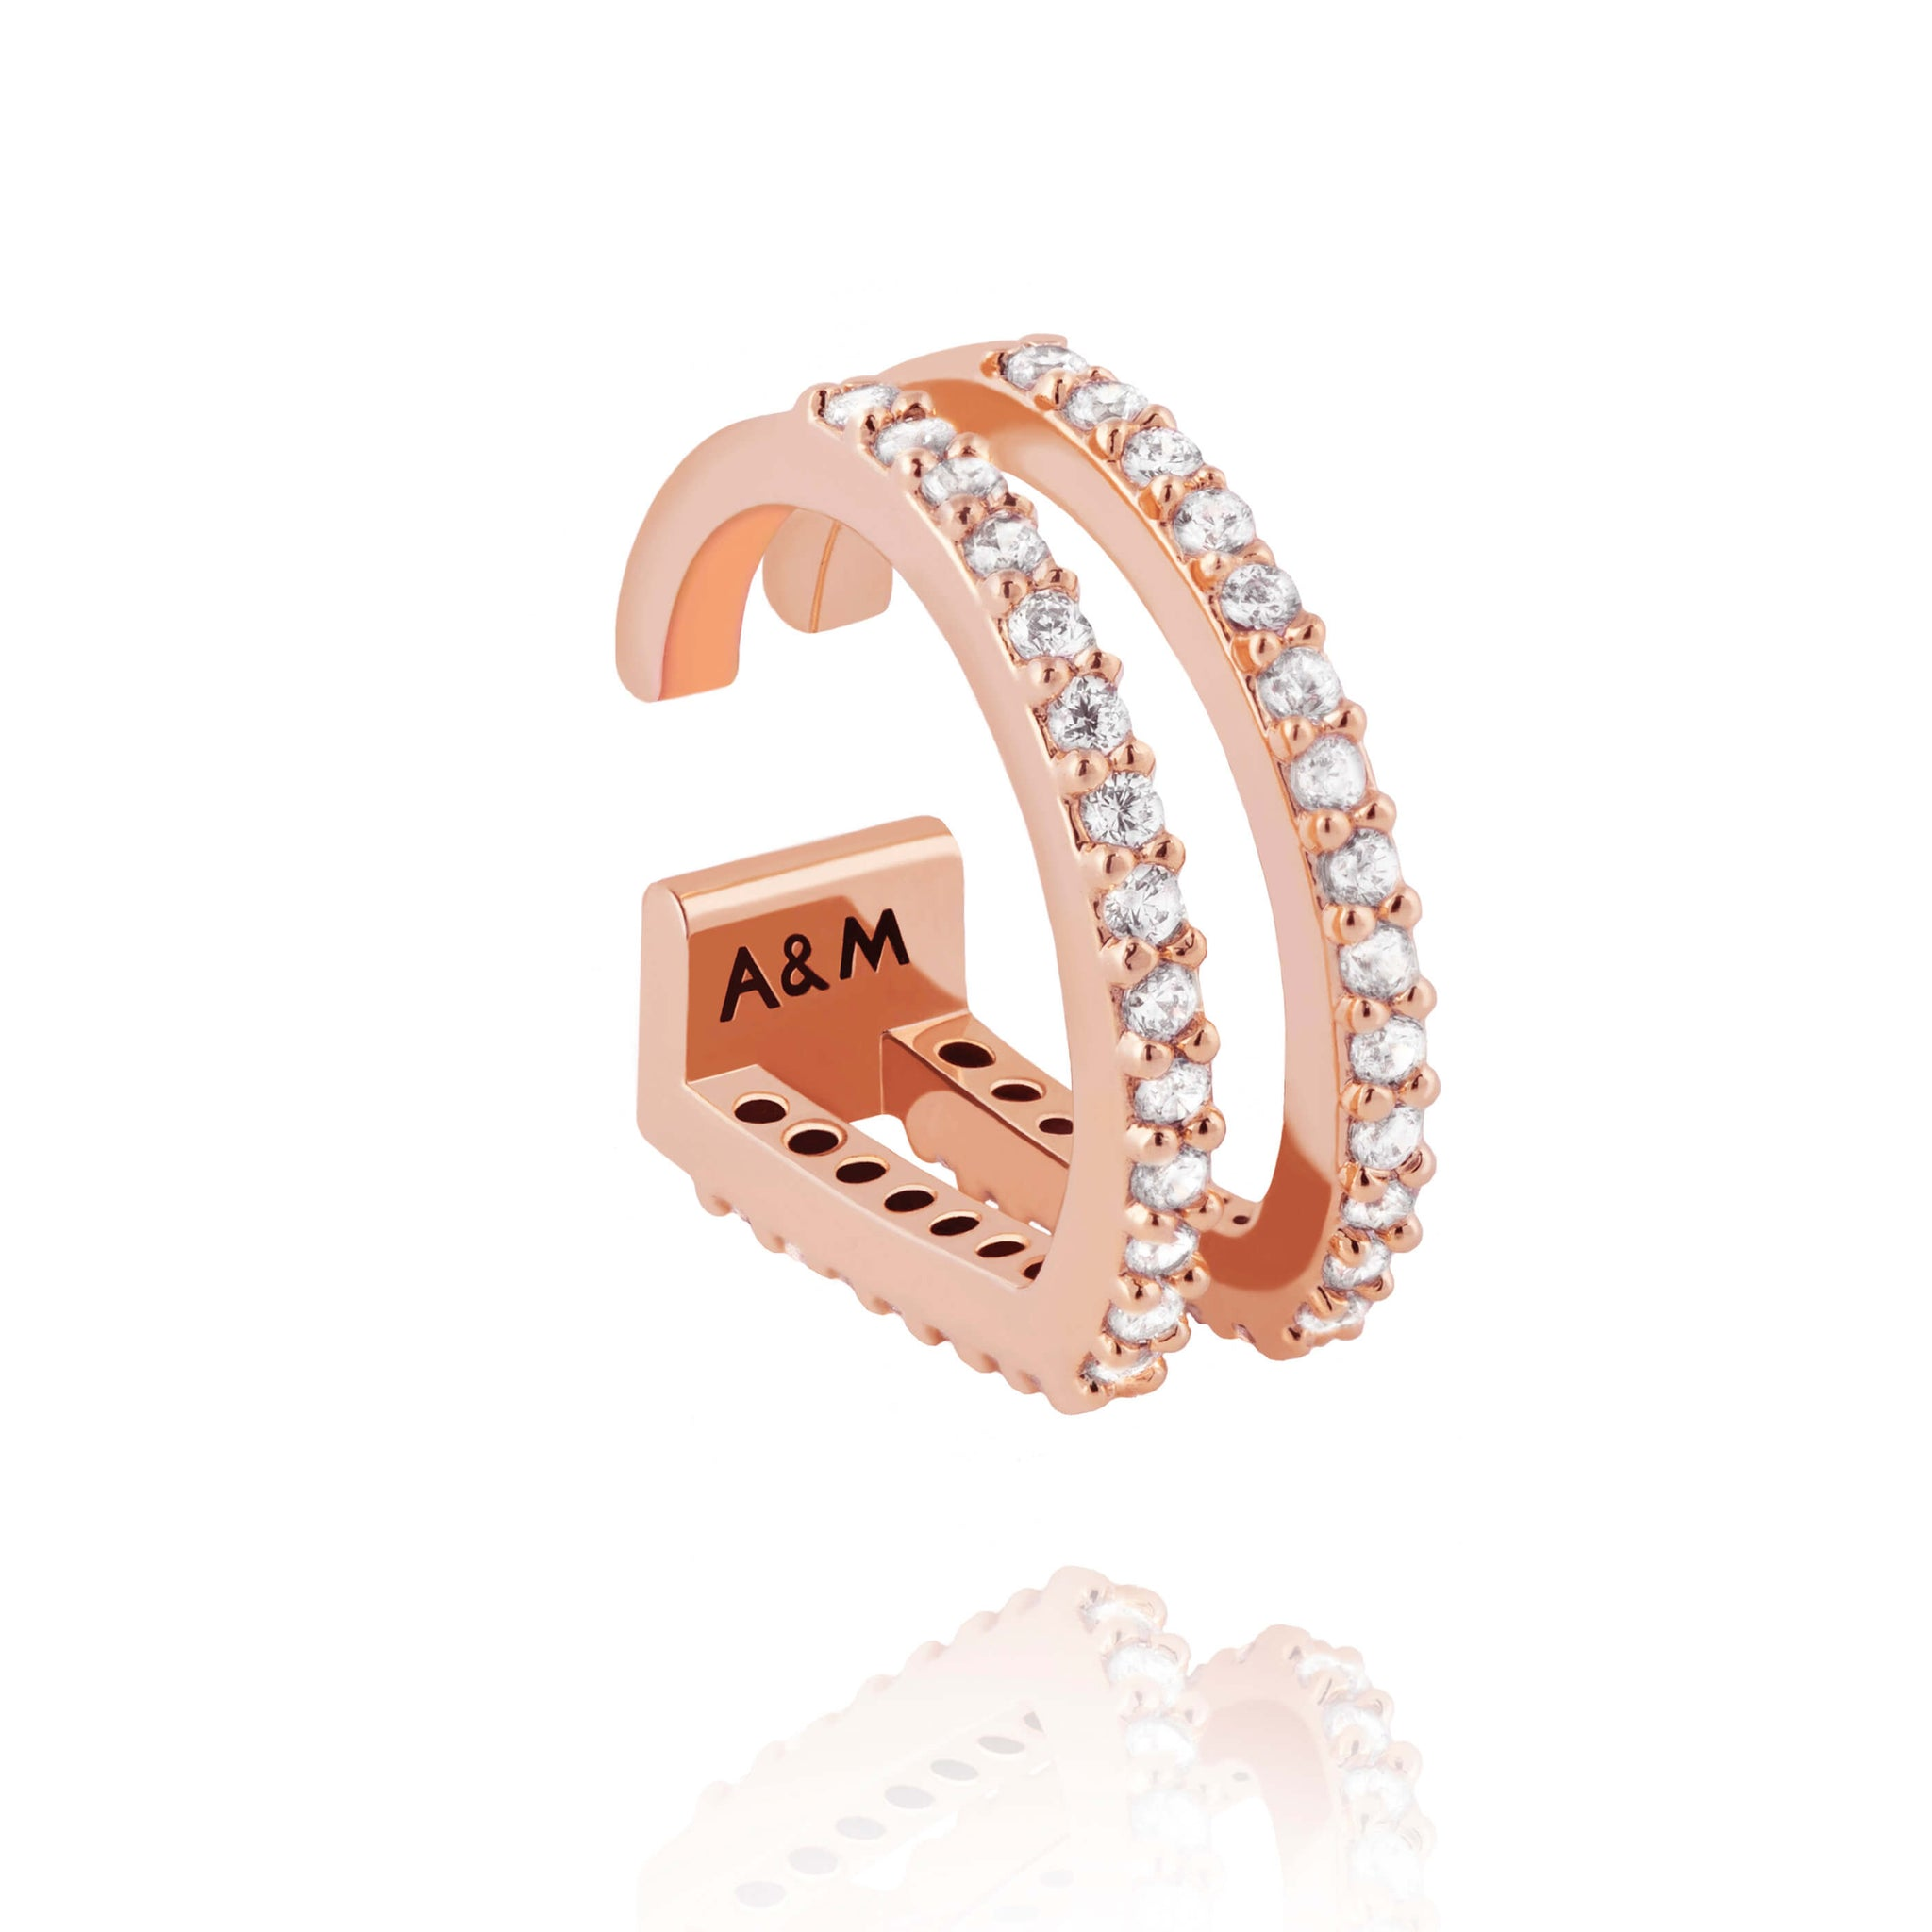 14k rose gold plated brass, diamanté encrusted ear cuff with two curved bars  Edit alt text